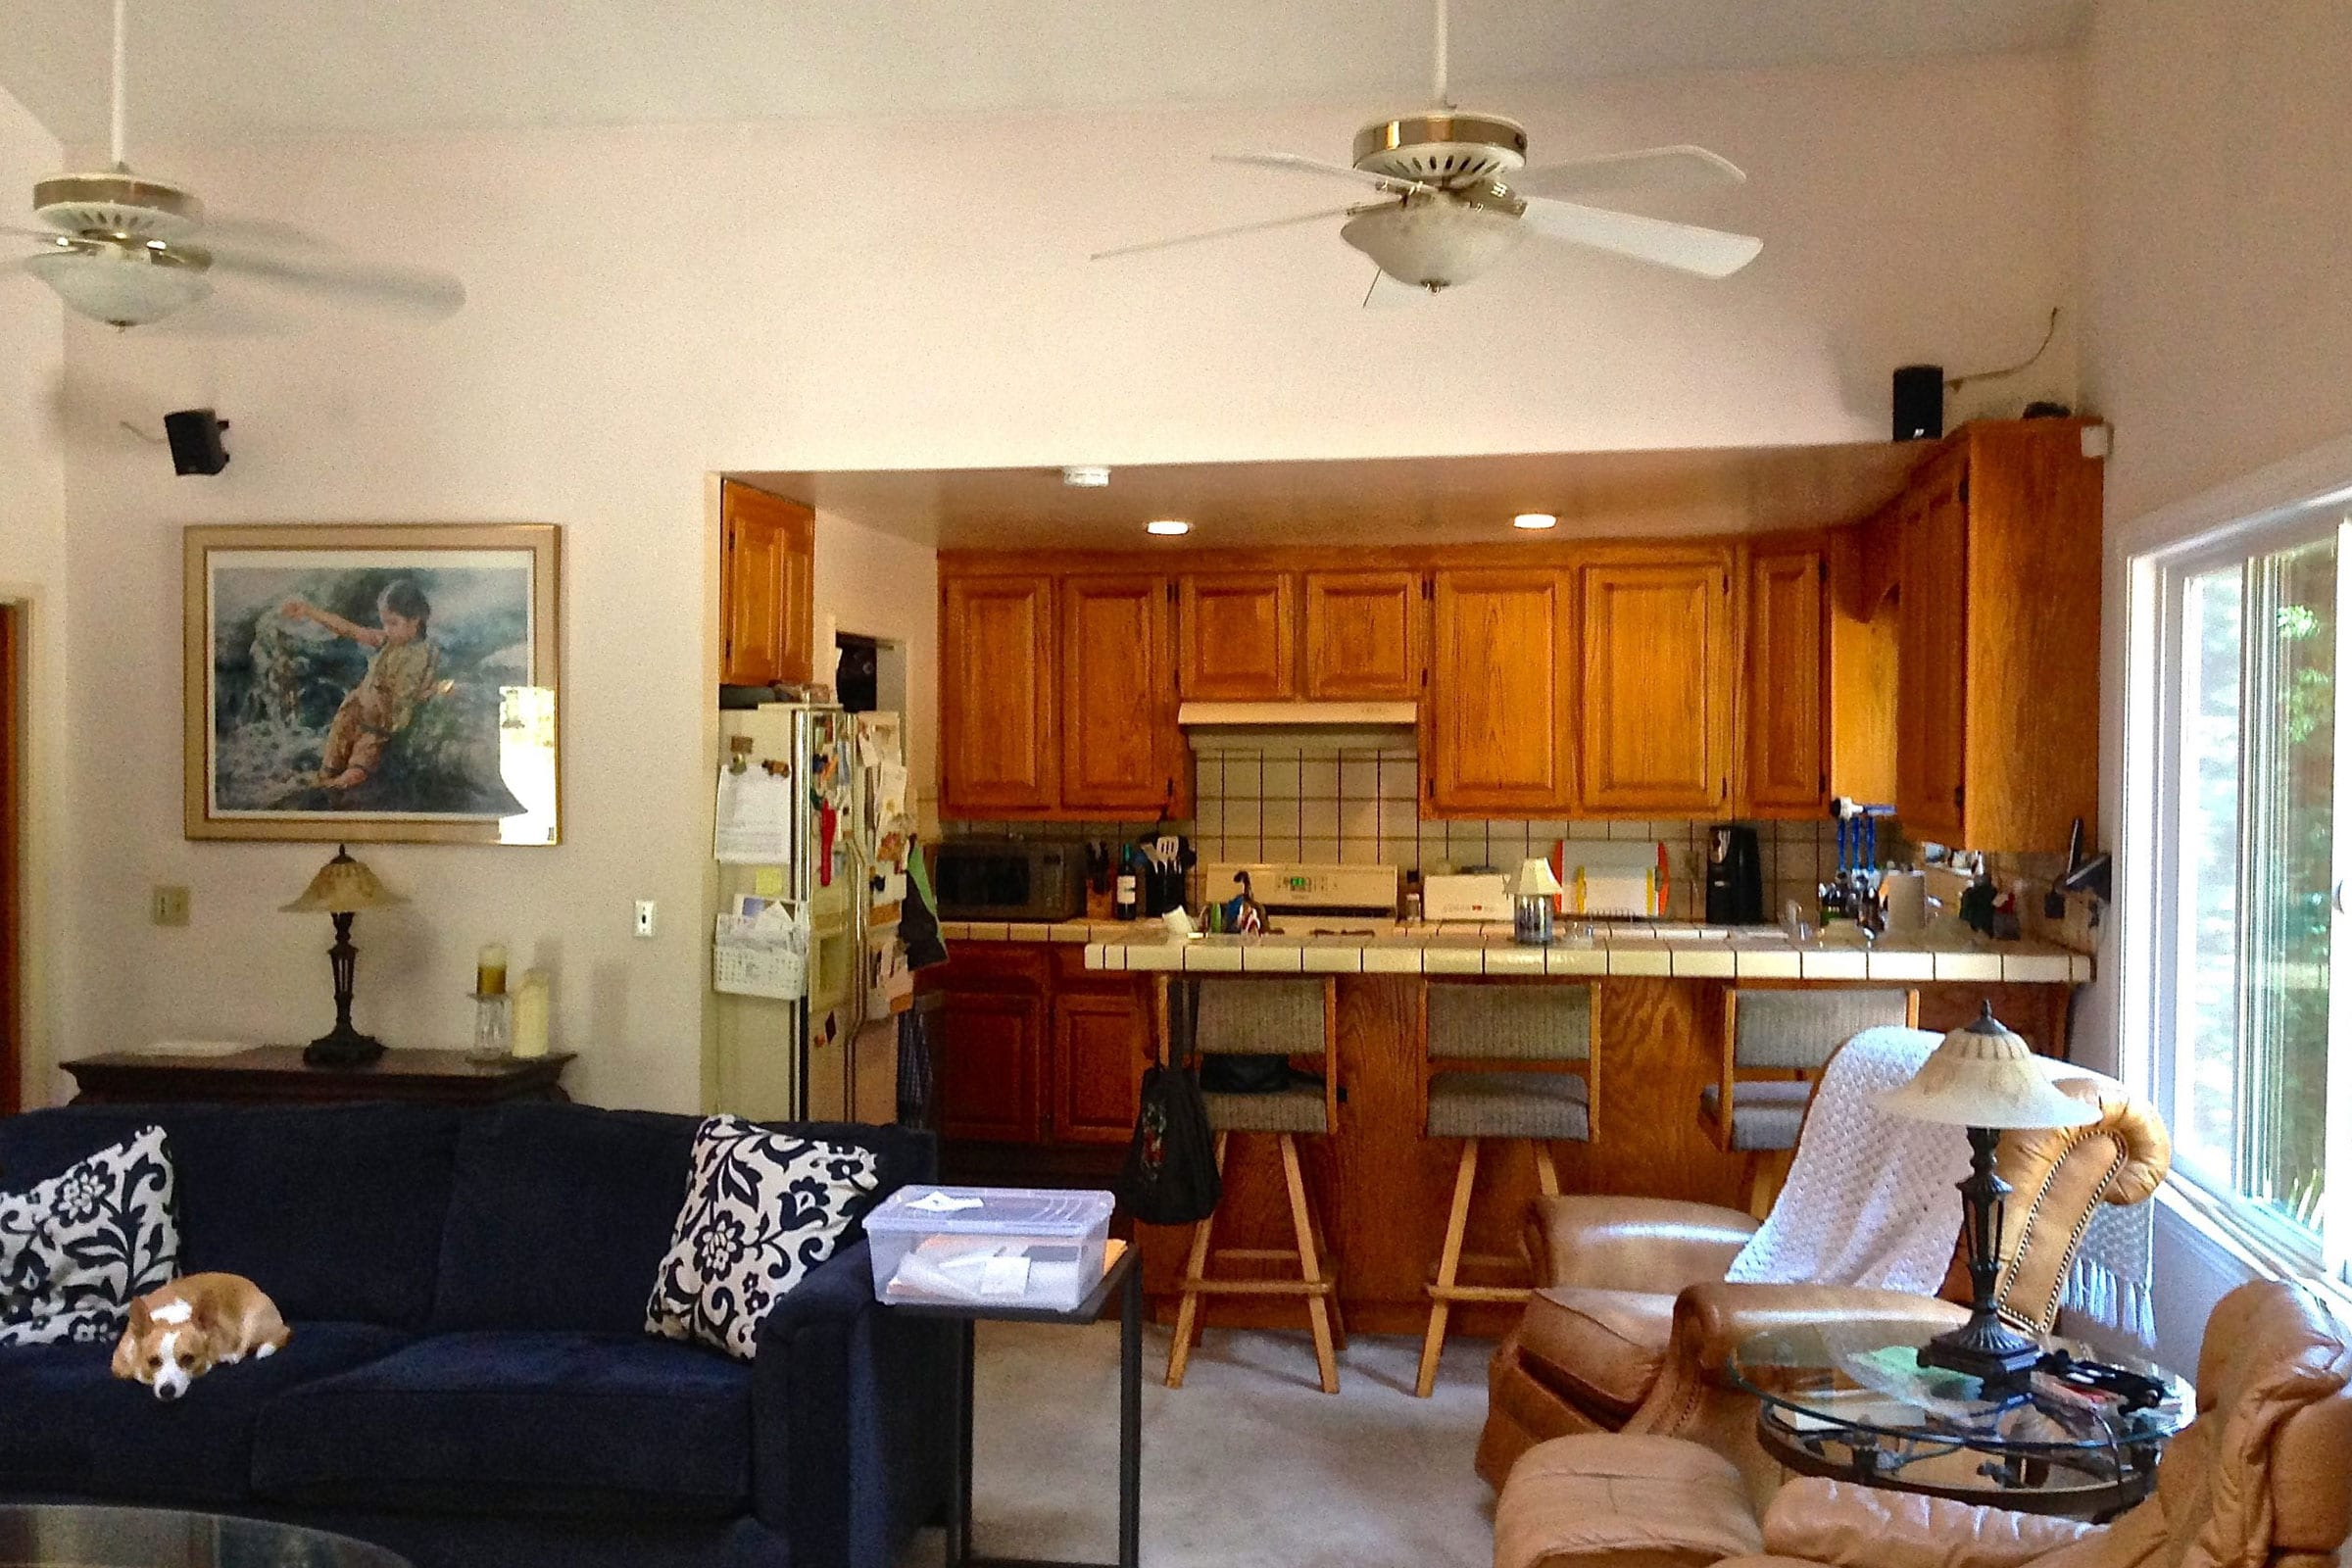 Before kitchen remodel with two ceiling fans and wooden cabinets